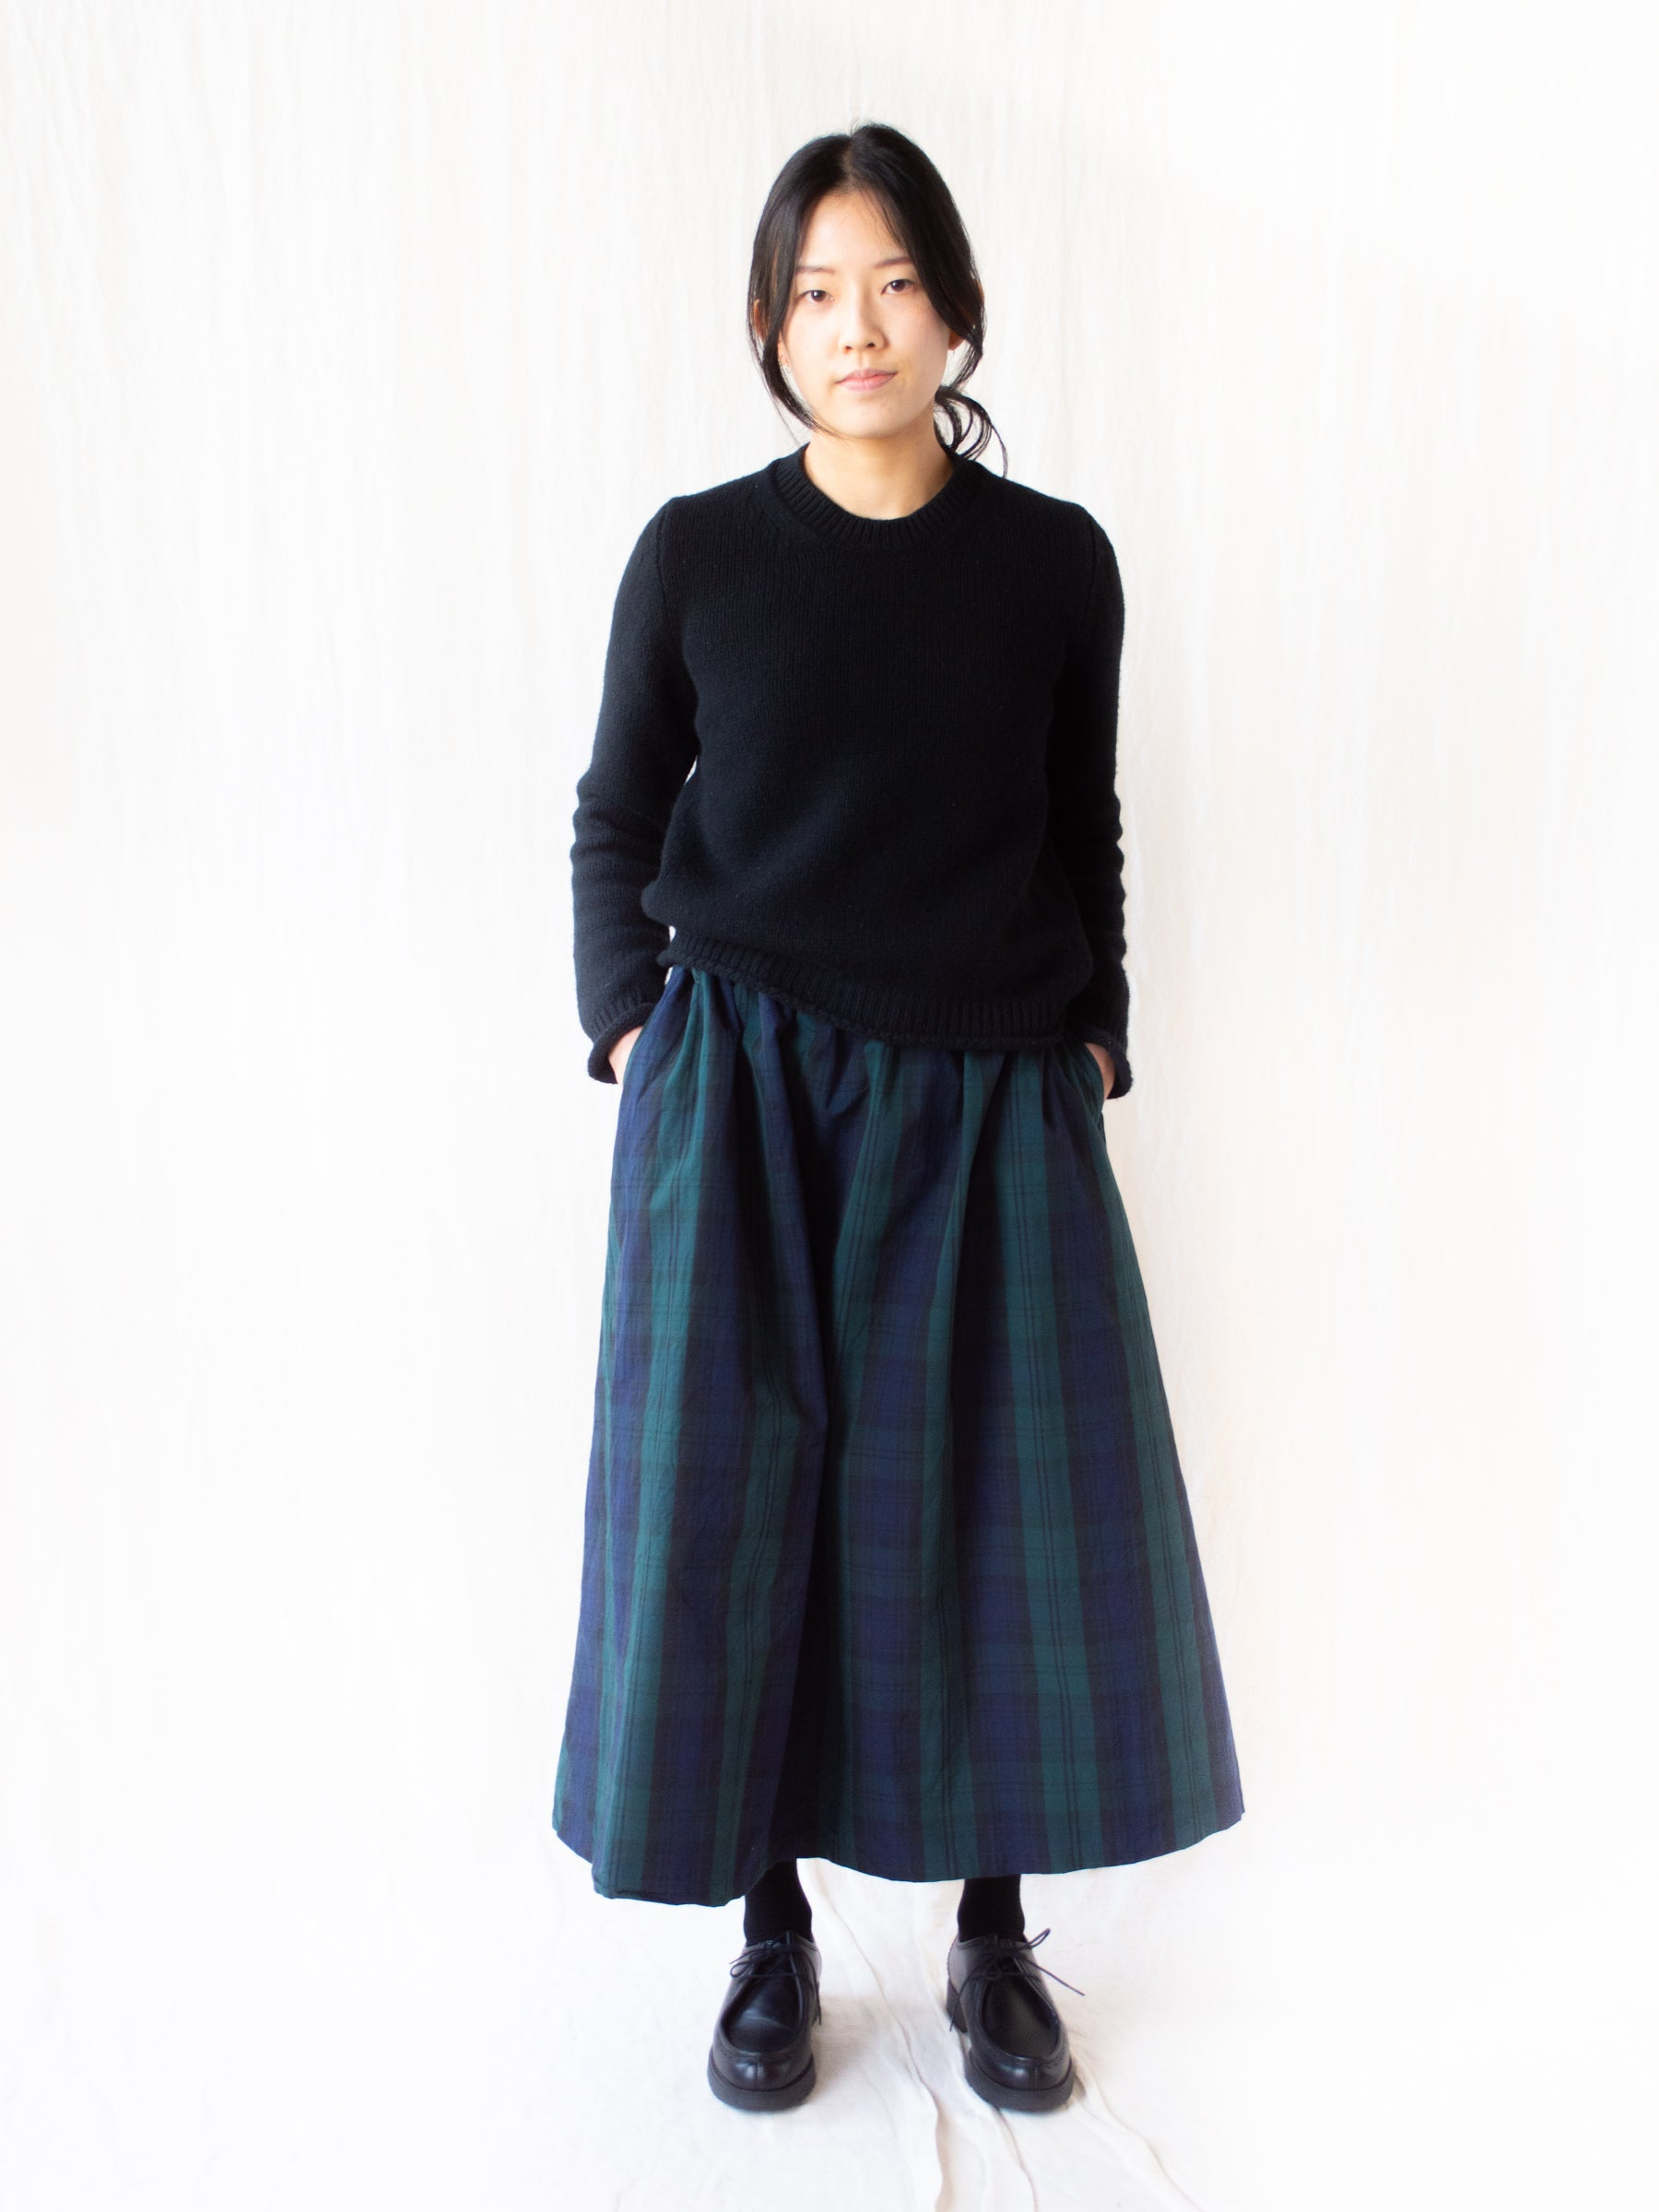 Typewriter Cotton Skirt - Black Watch